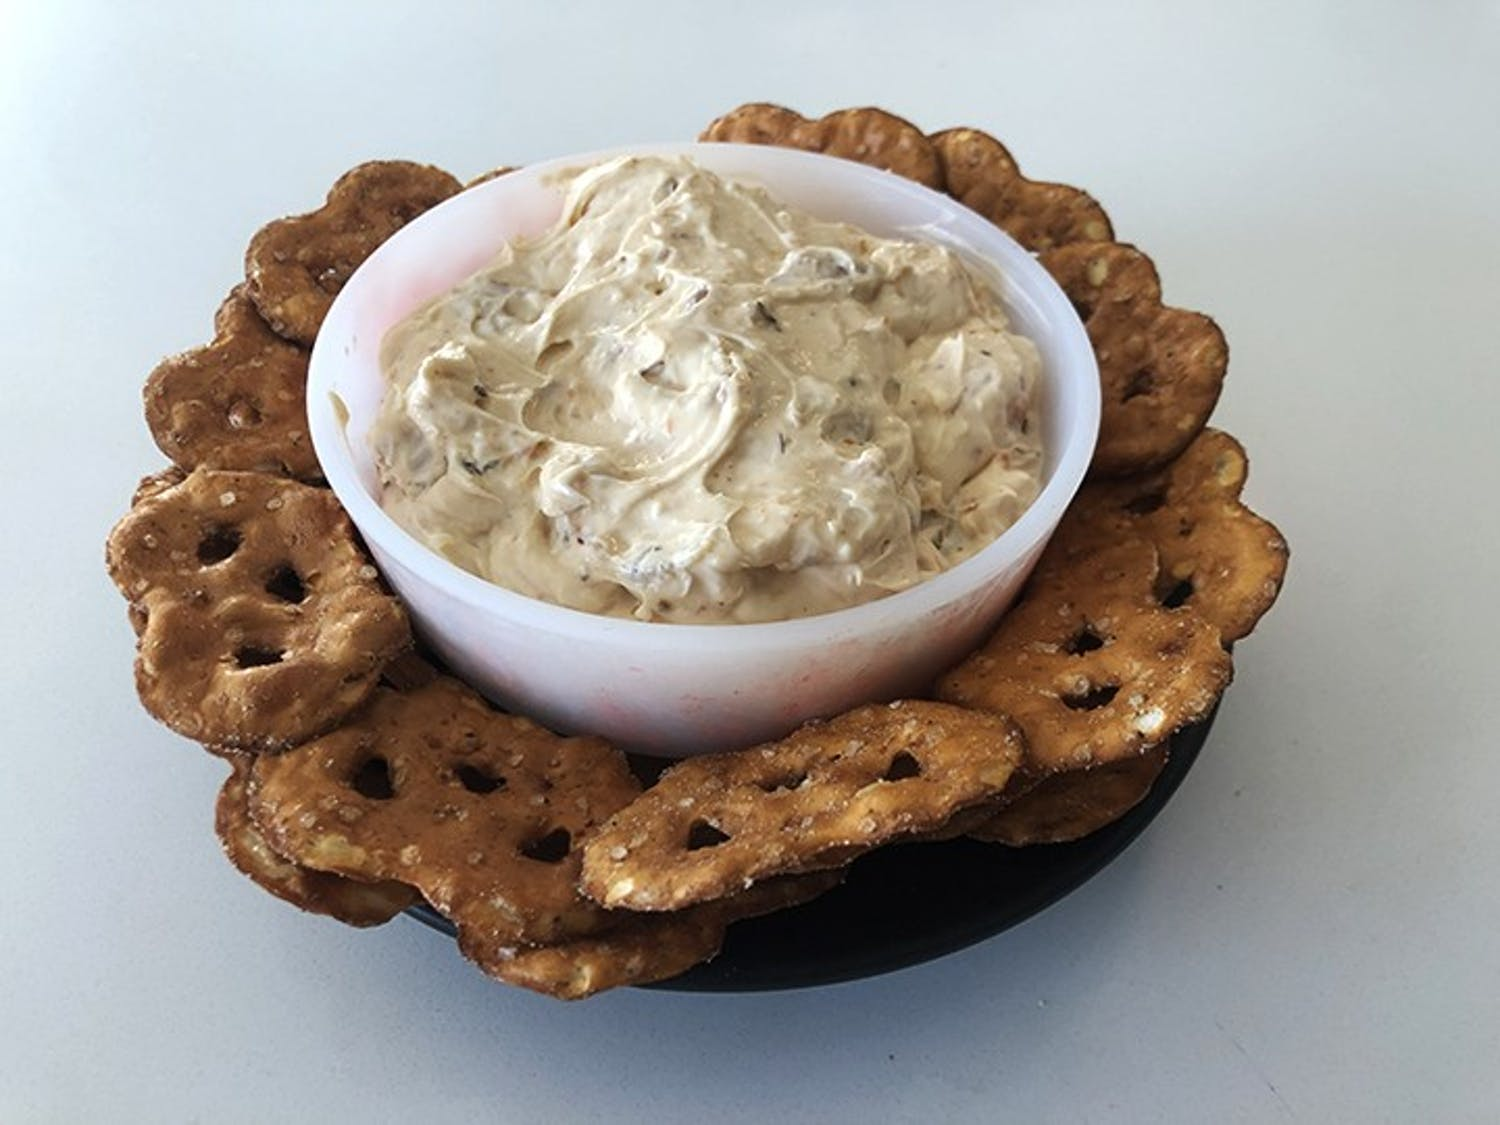 Shrimp dip with a side of pretzels, chips or crackers can be a great alternative to traditional Super Bowl party snacks.